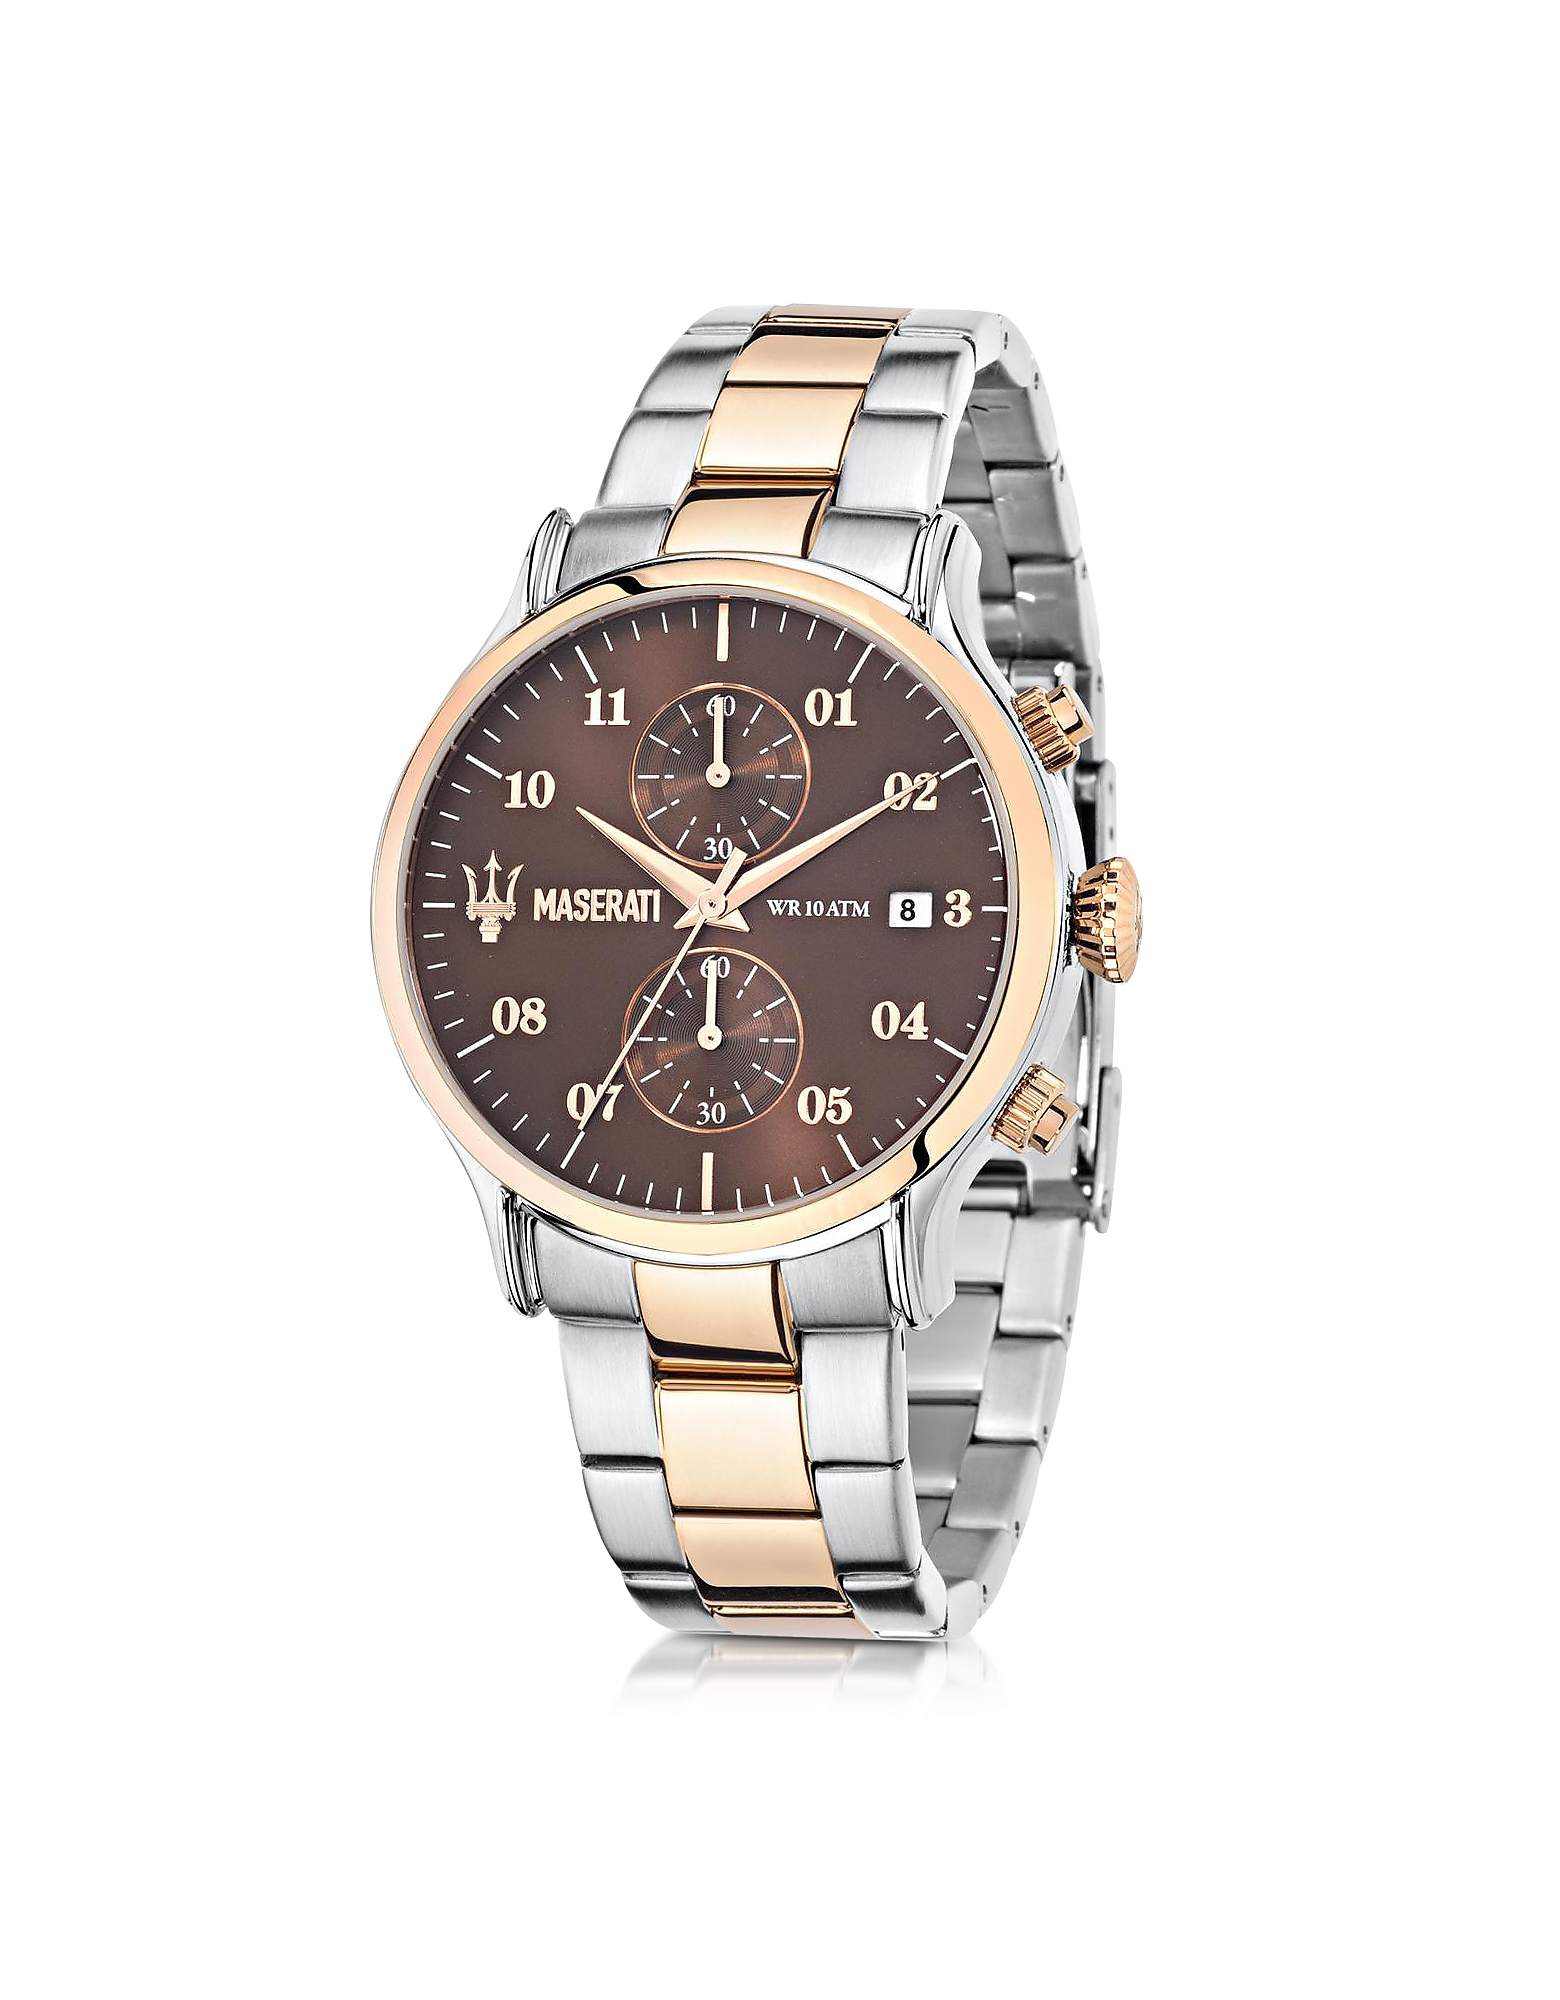 Maserati Men's Watches, Epoca Brown Dial Two Tone Stainless Steel Men's Watch